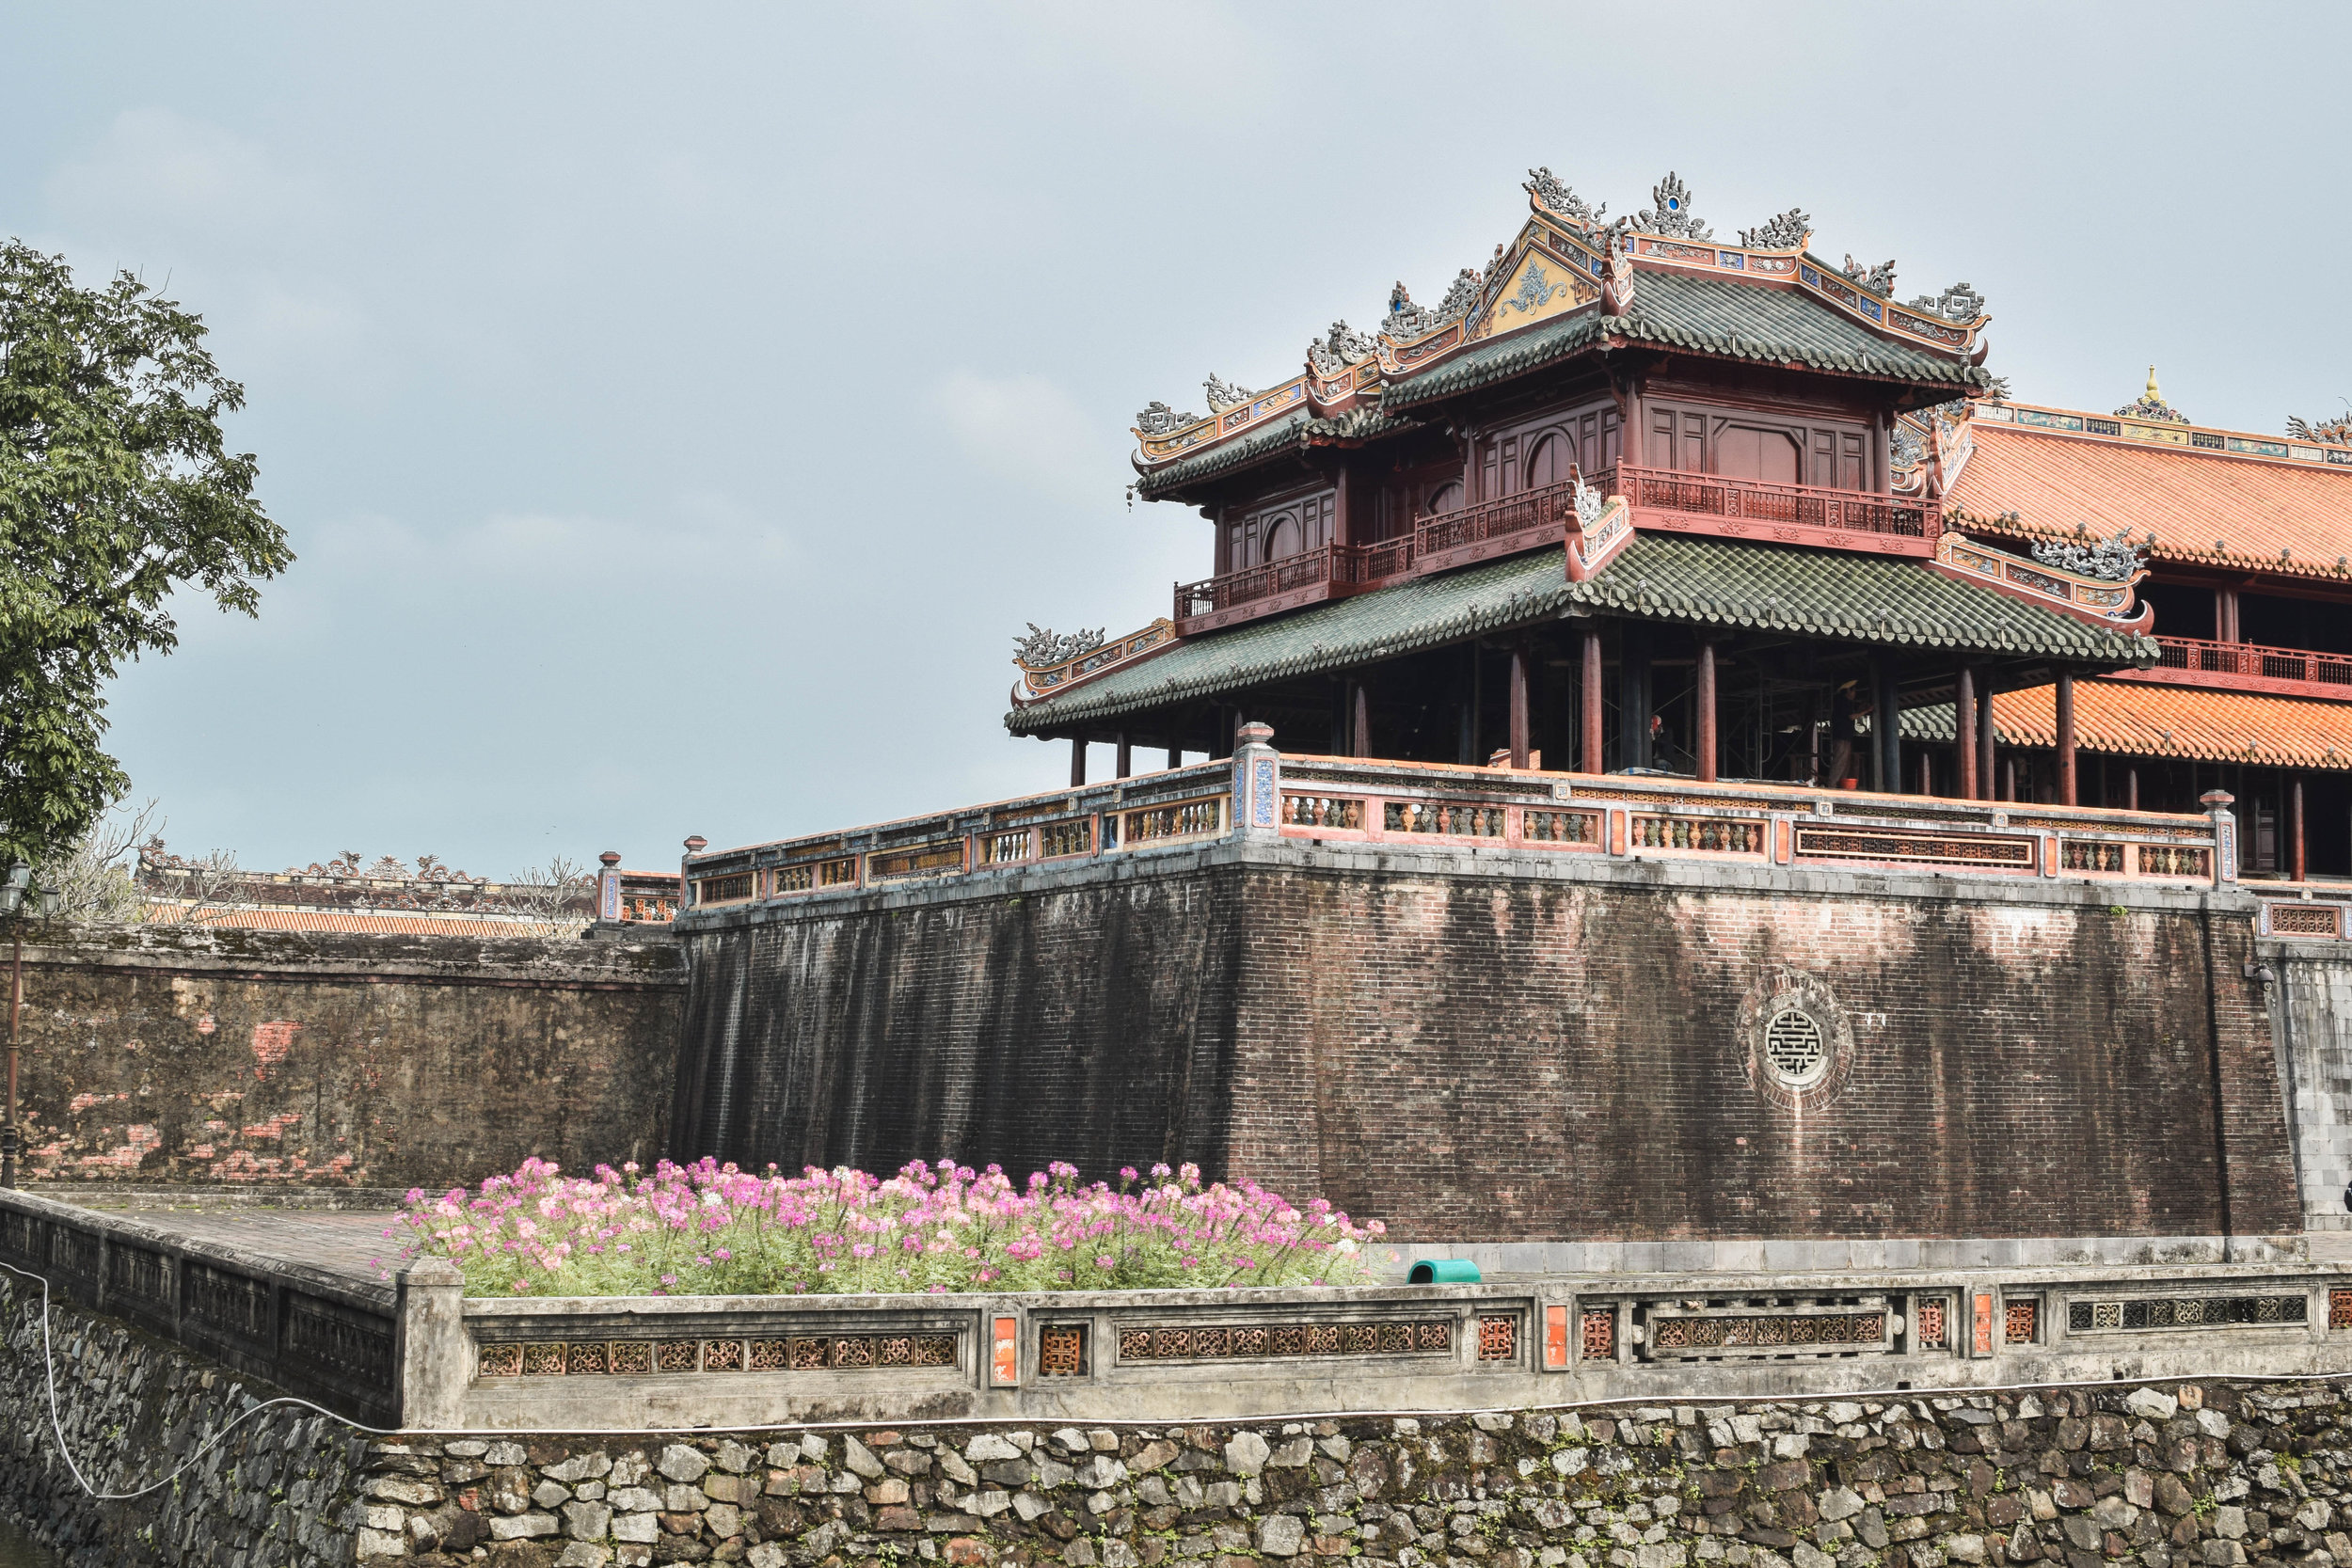 The entrance to the Ancient Citadel in Hue.